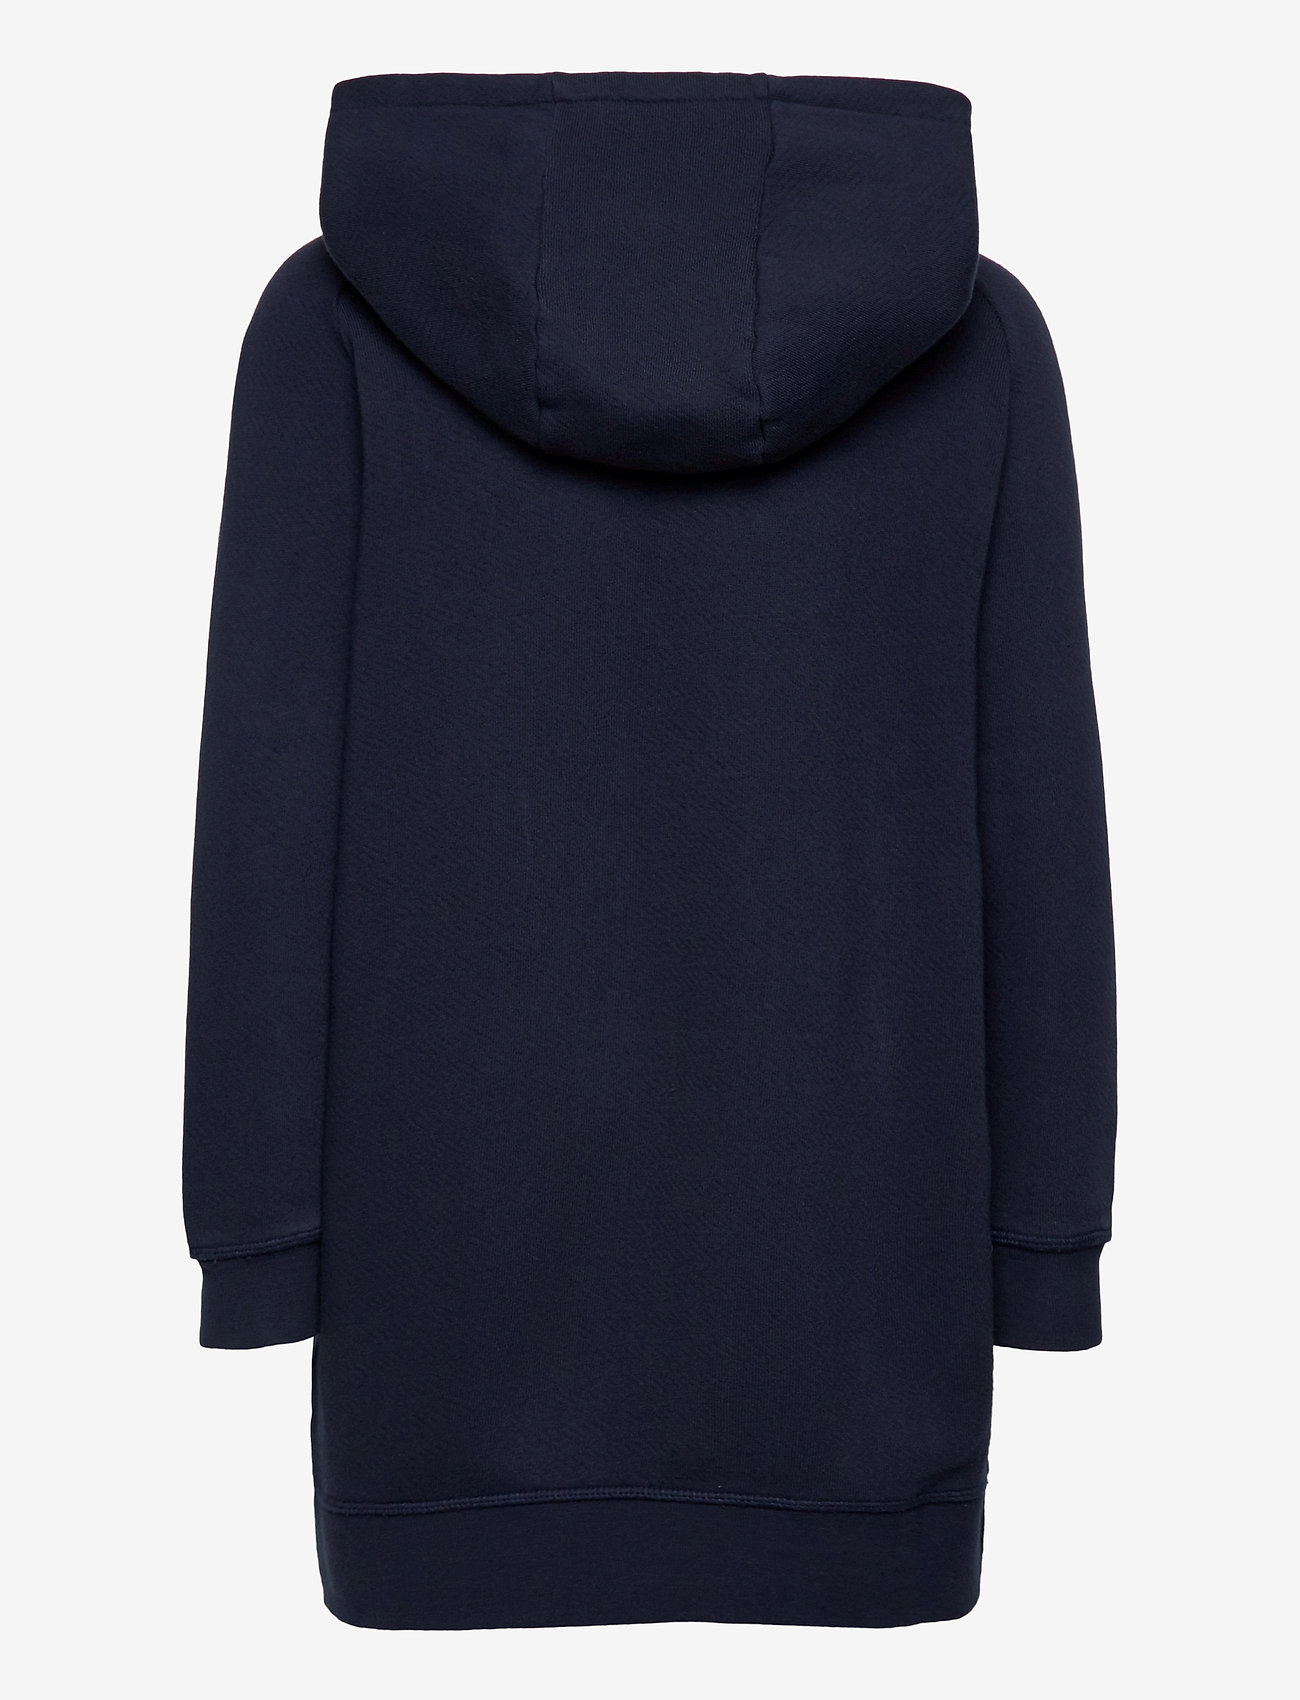 Zadig & Voltaire Kids - HOODED DRESS - robes - navy - 1